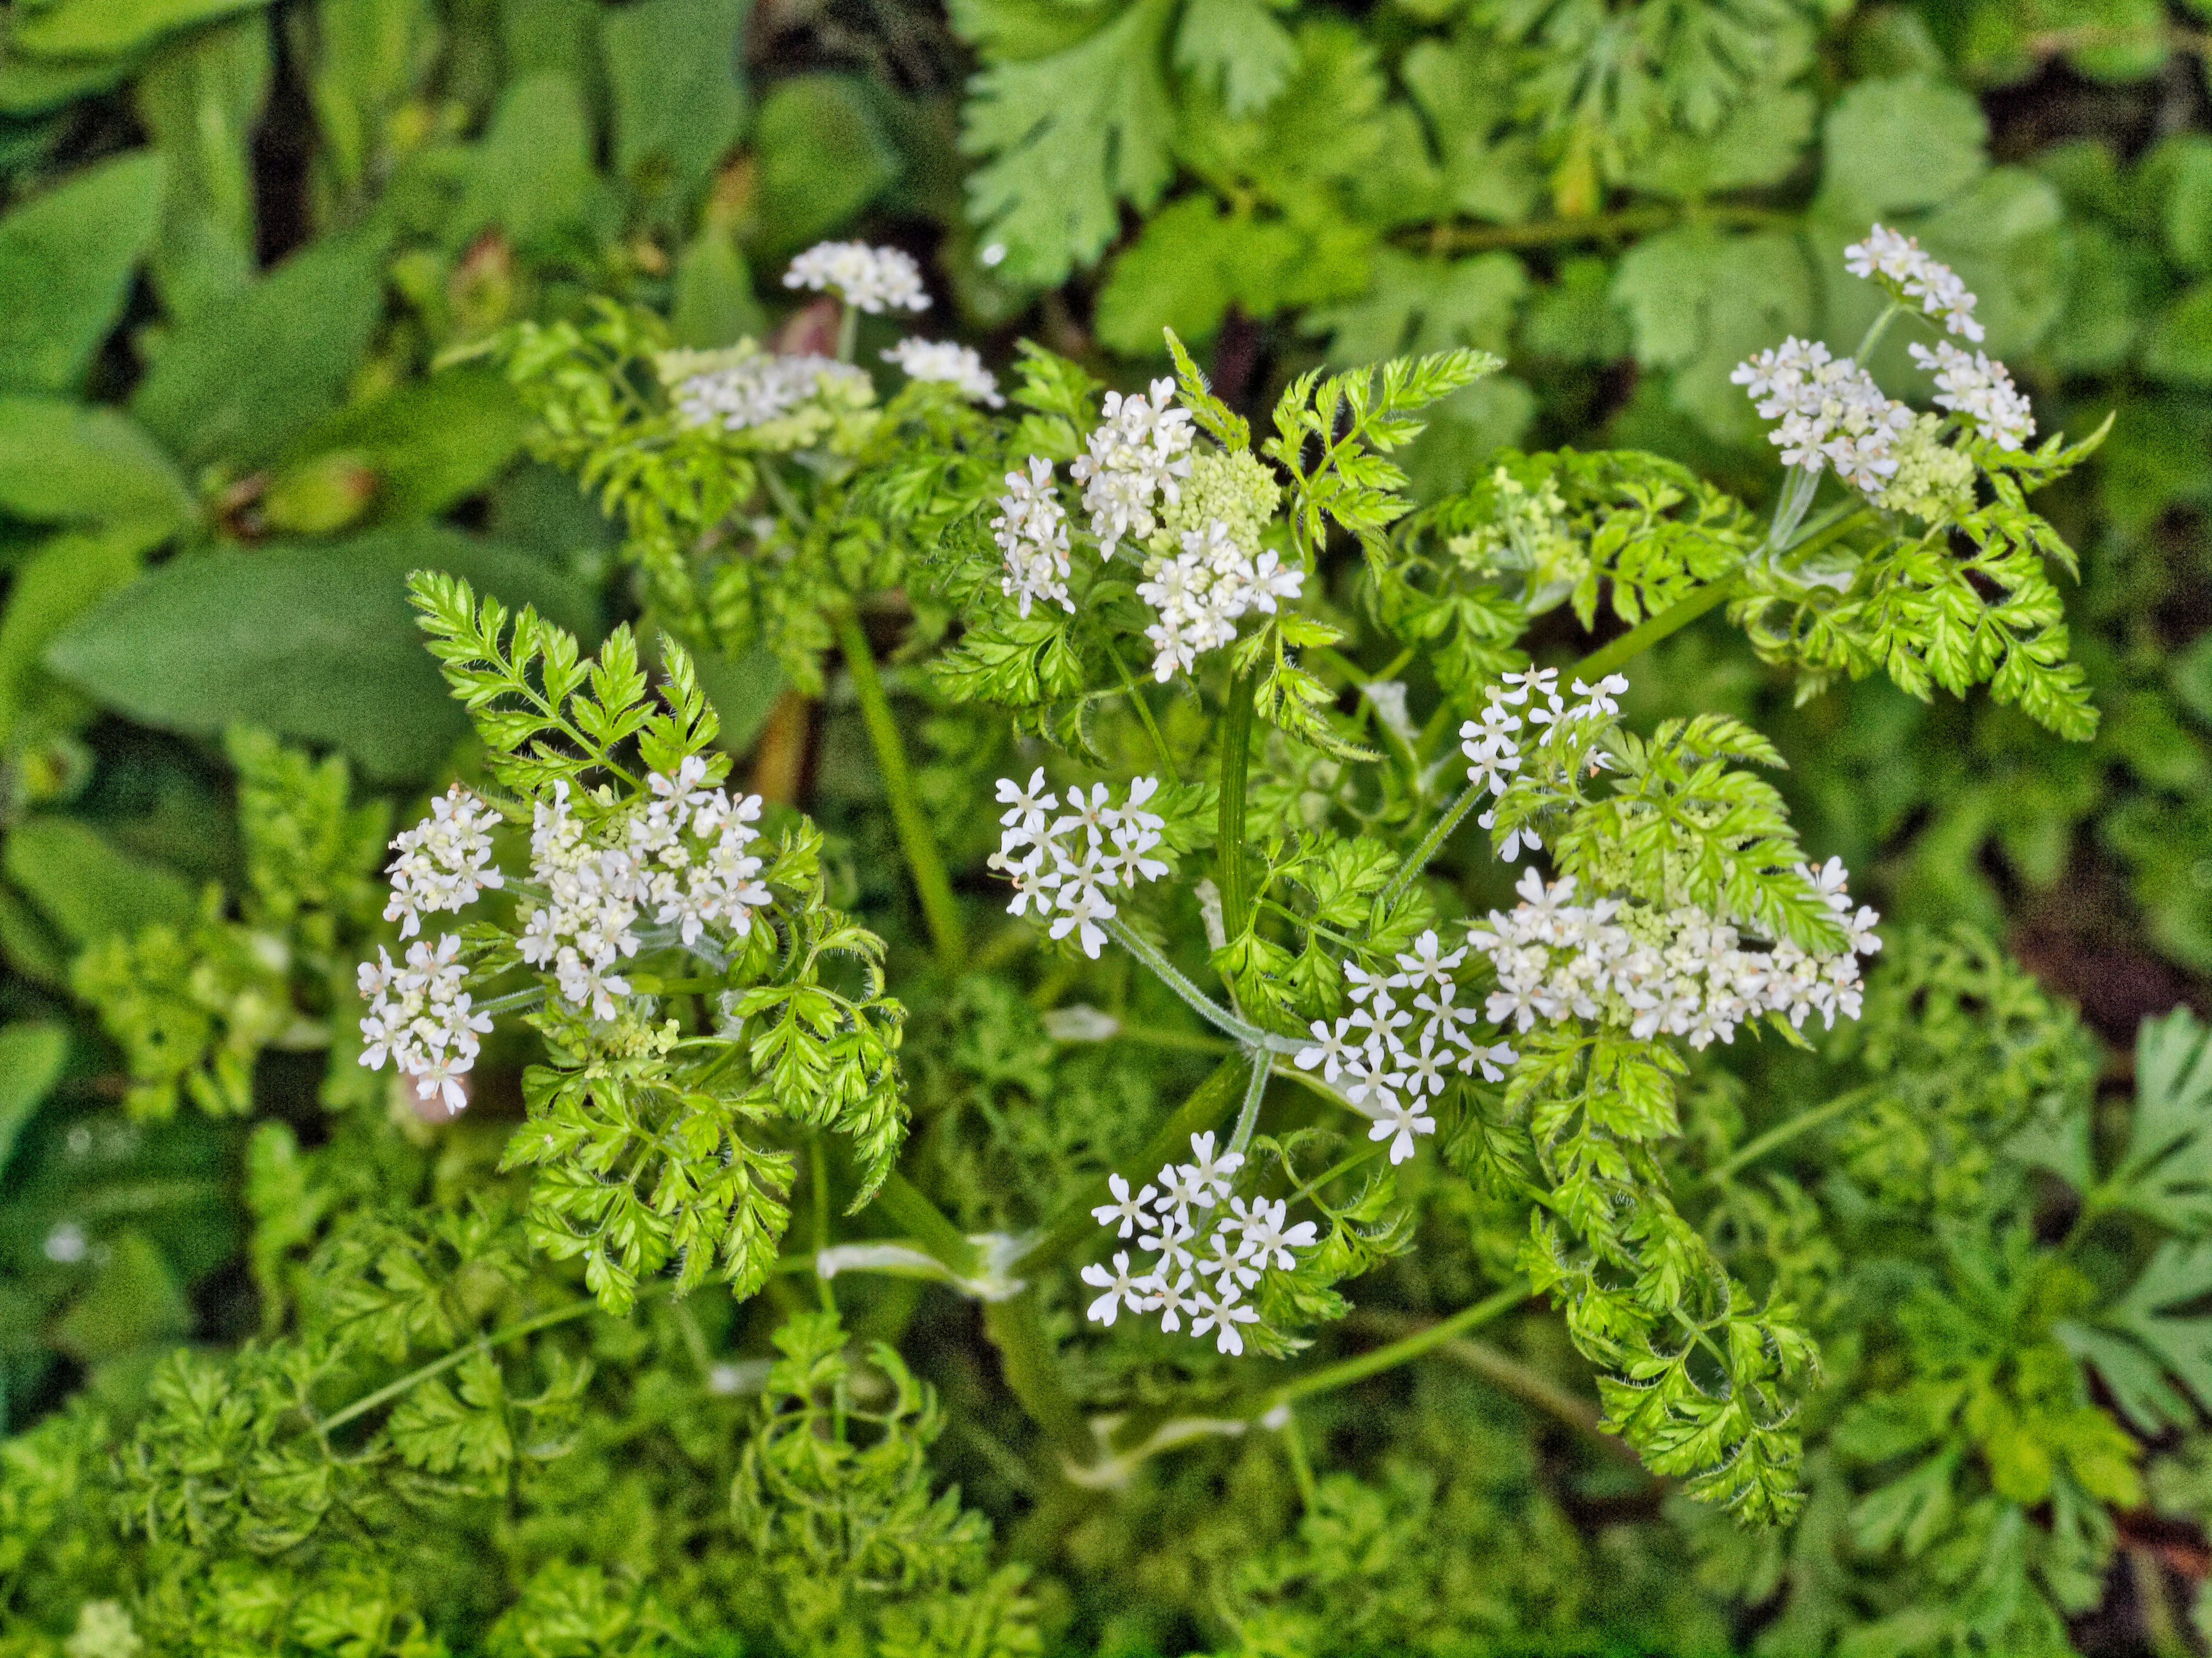 This should be Chervil-2.jpeg.  Is it missing?